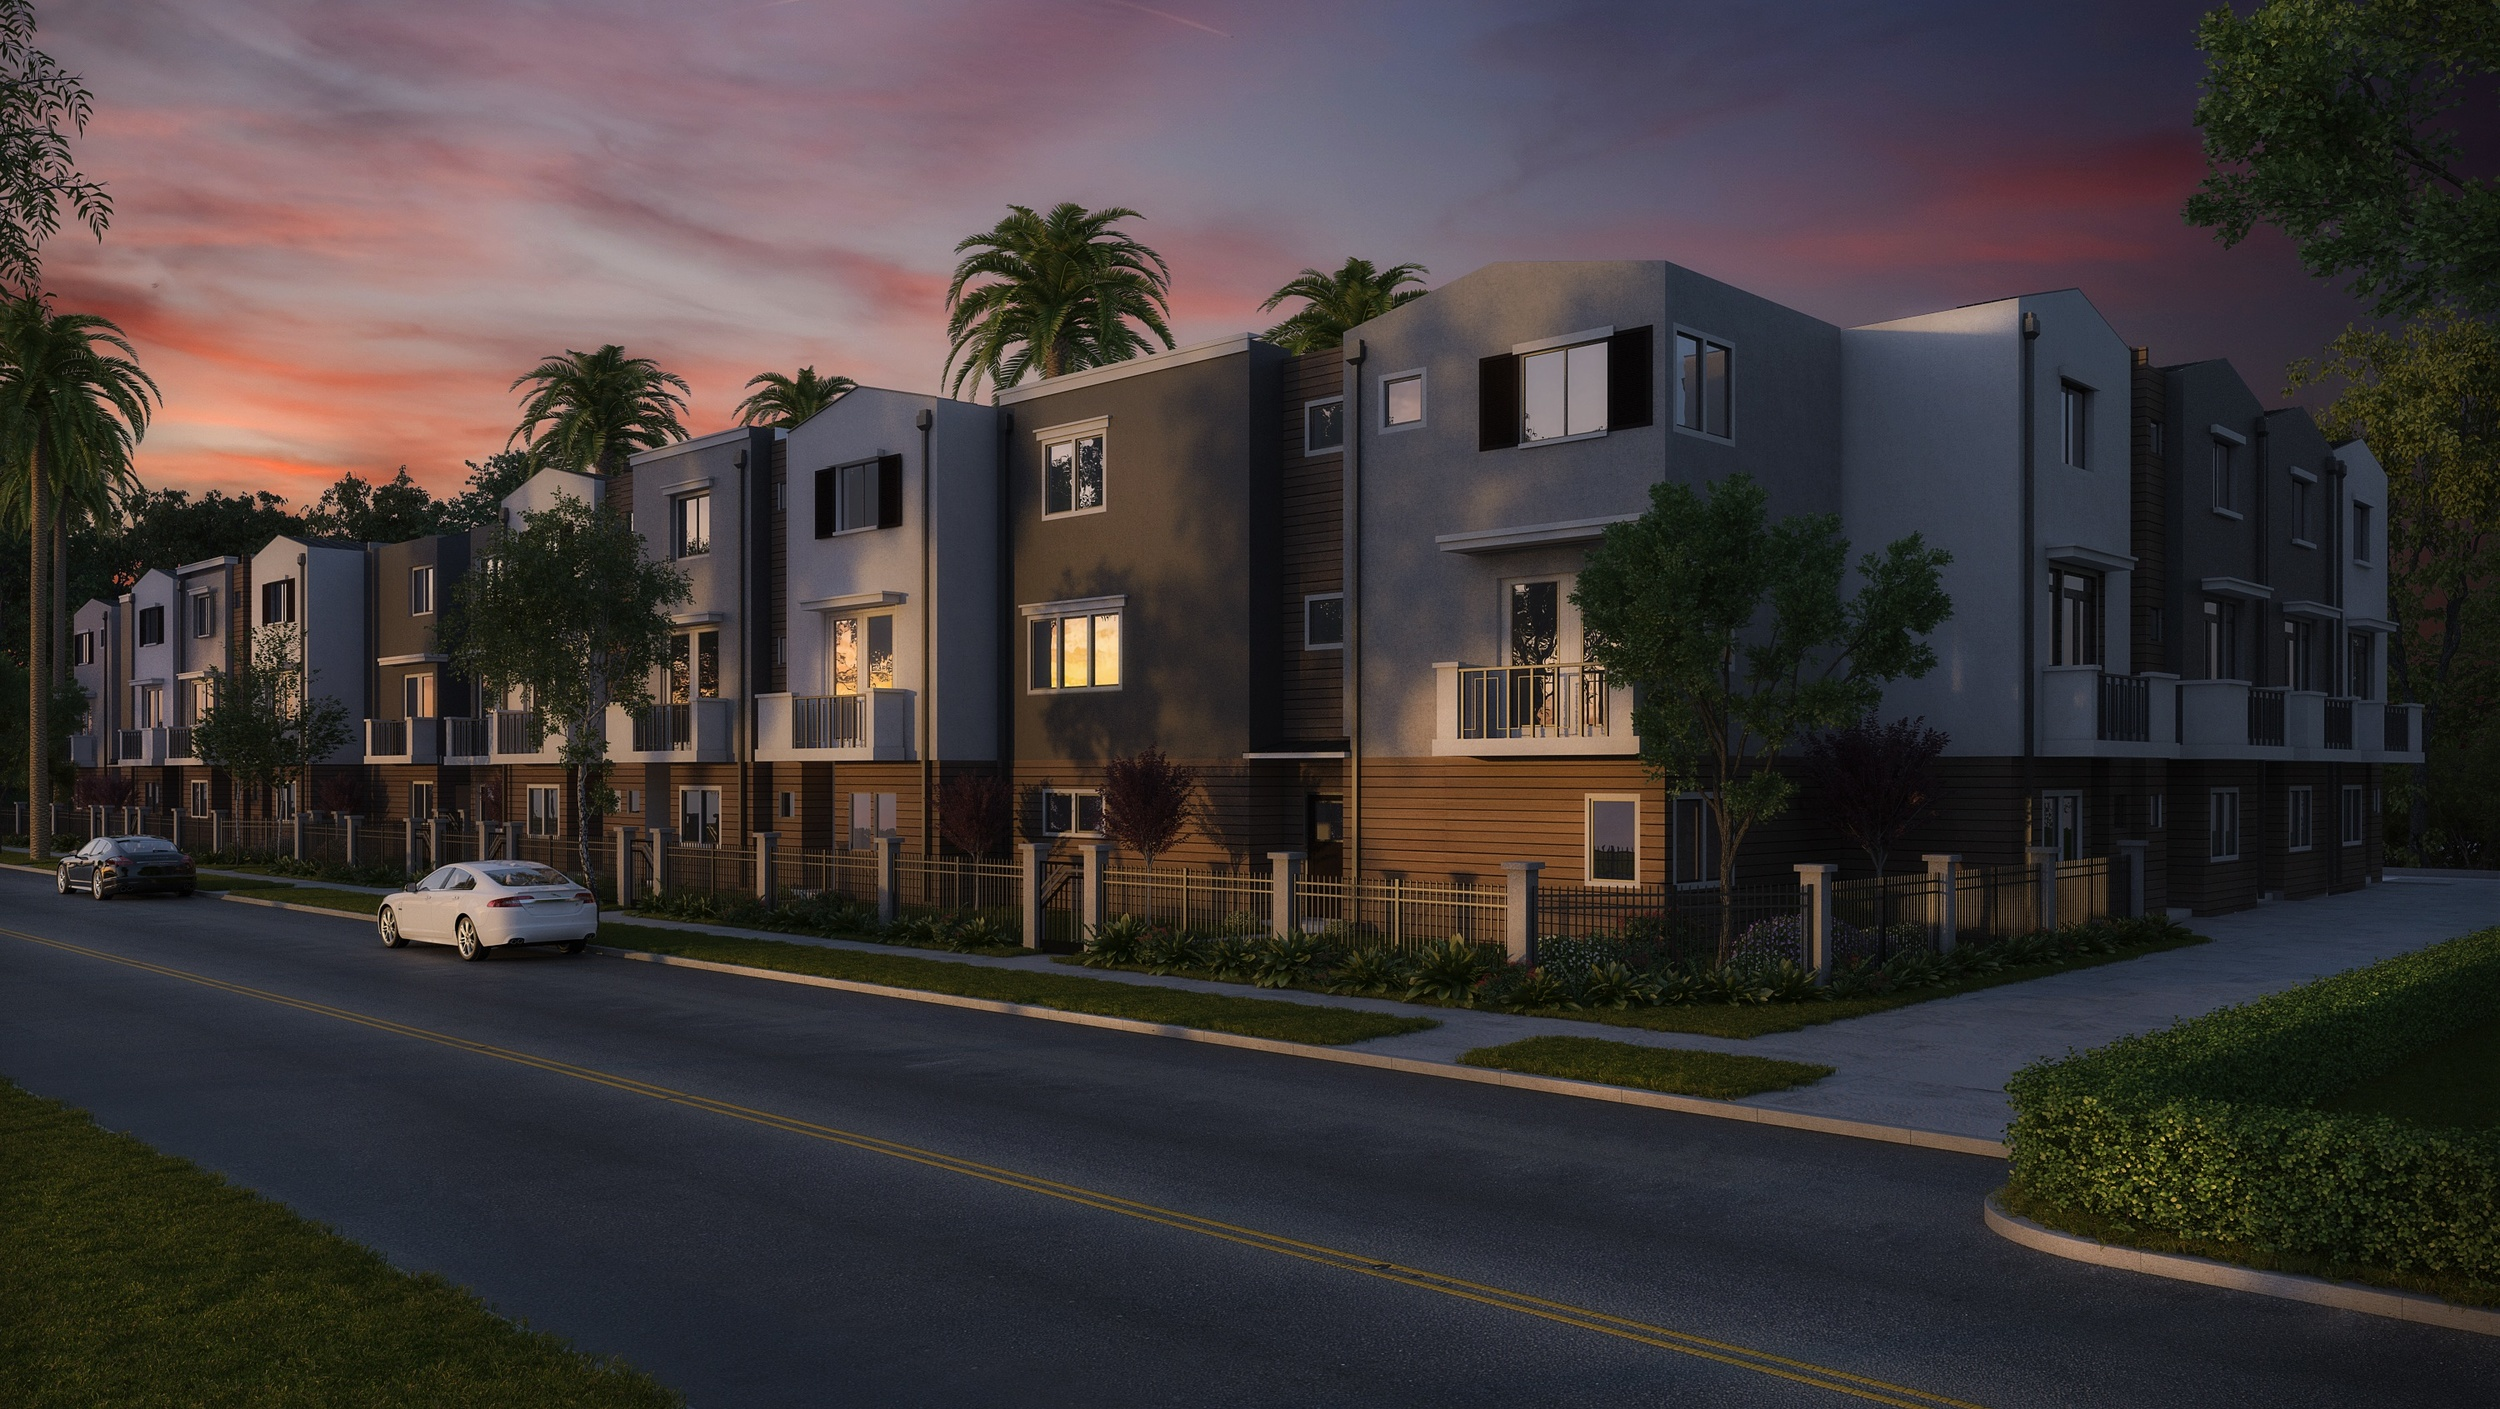 Gallery - Sunset over Development.jpg